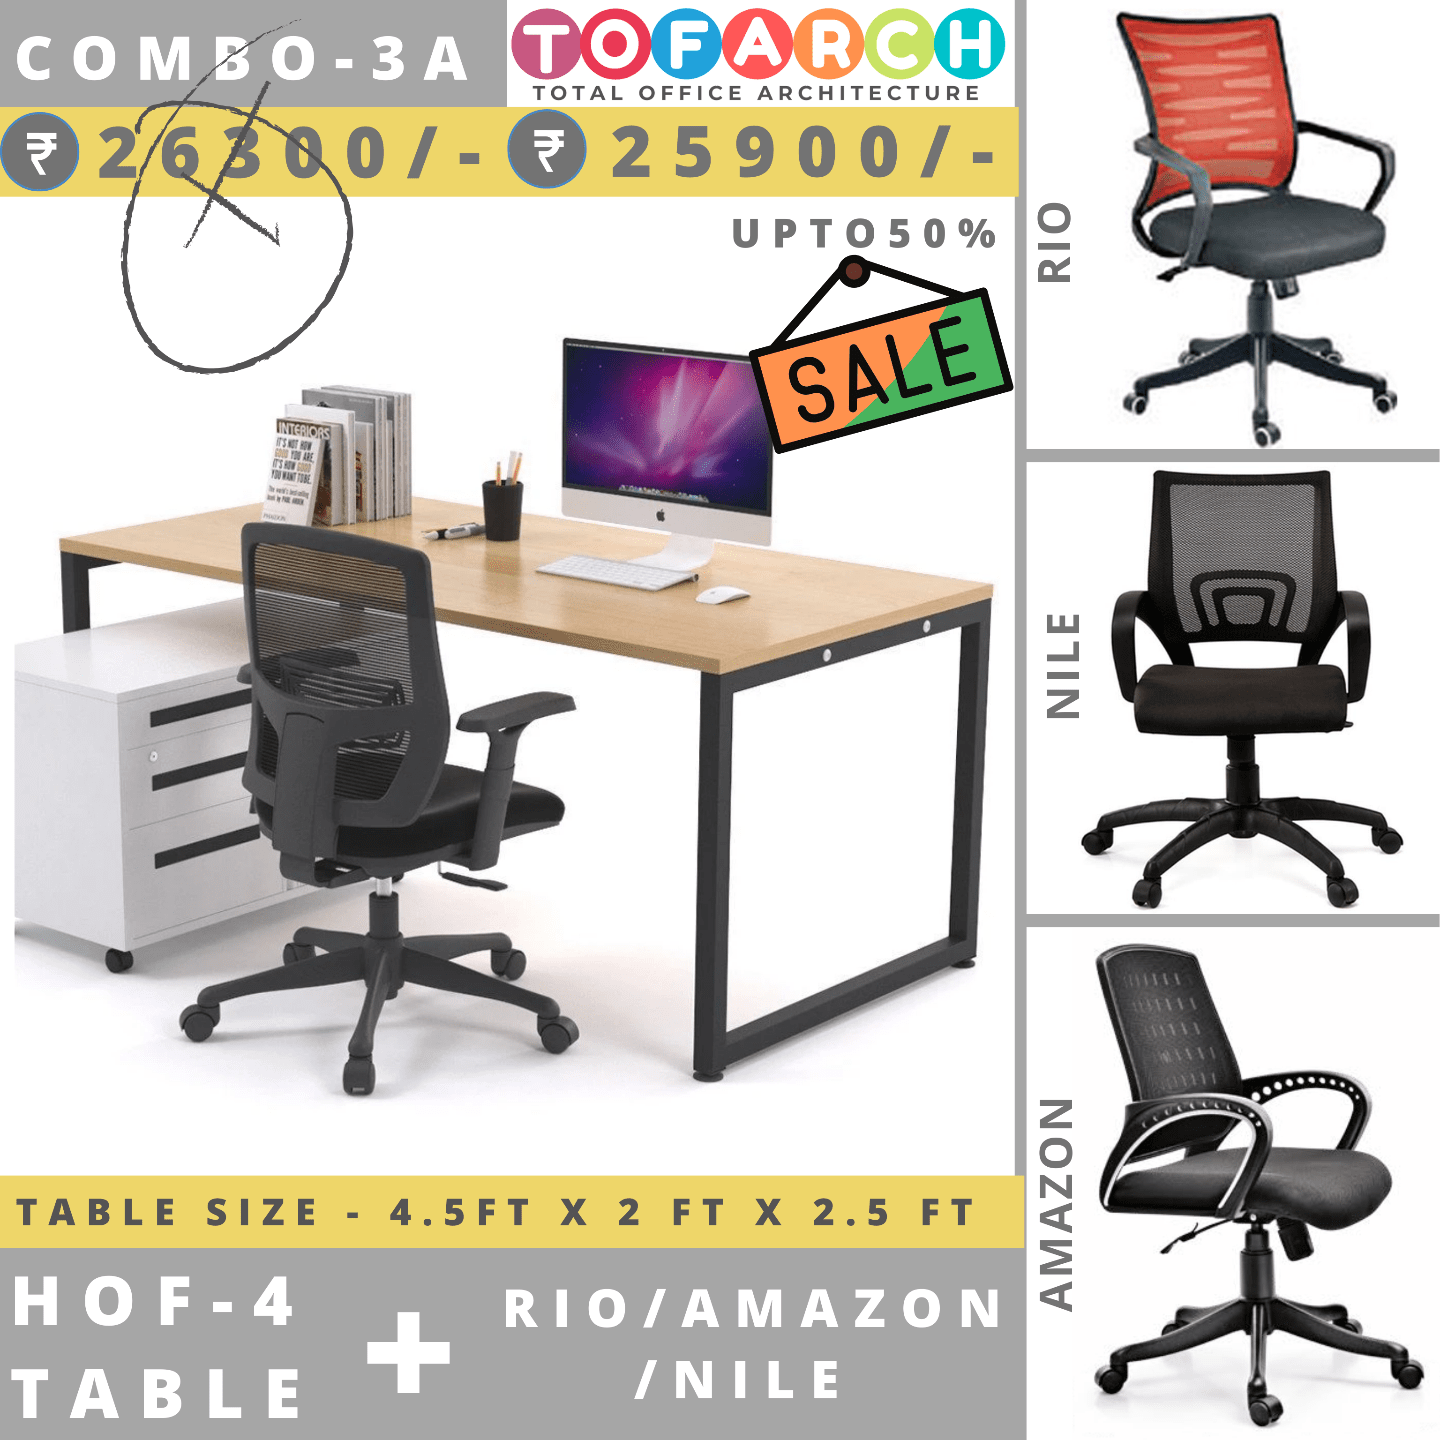 Table Chair Combo - 3A (HOF 4 Table + RIO / AMAZON / NILE Chair)